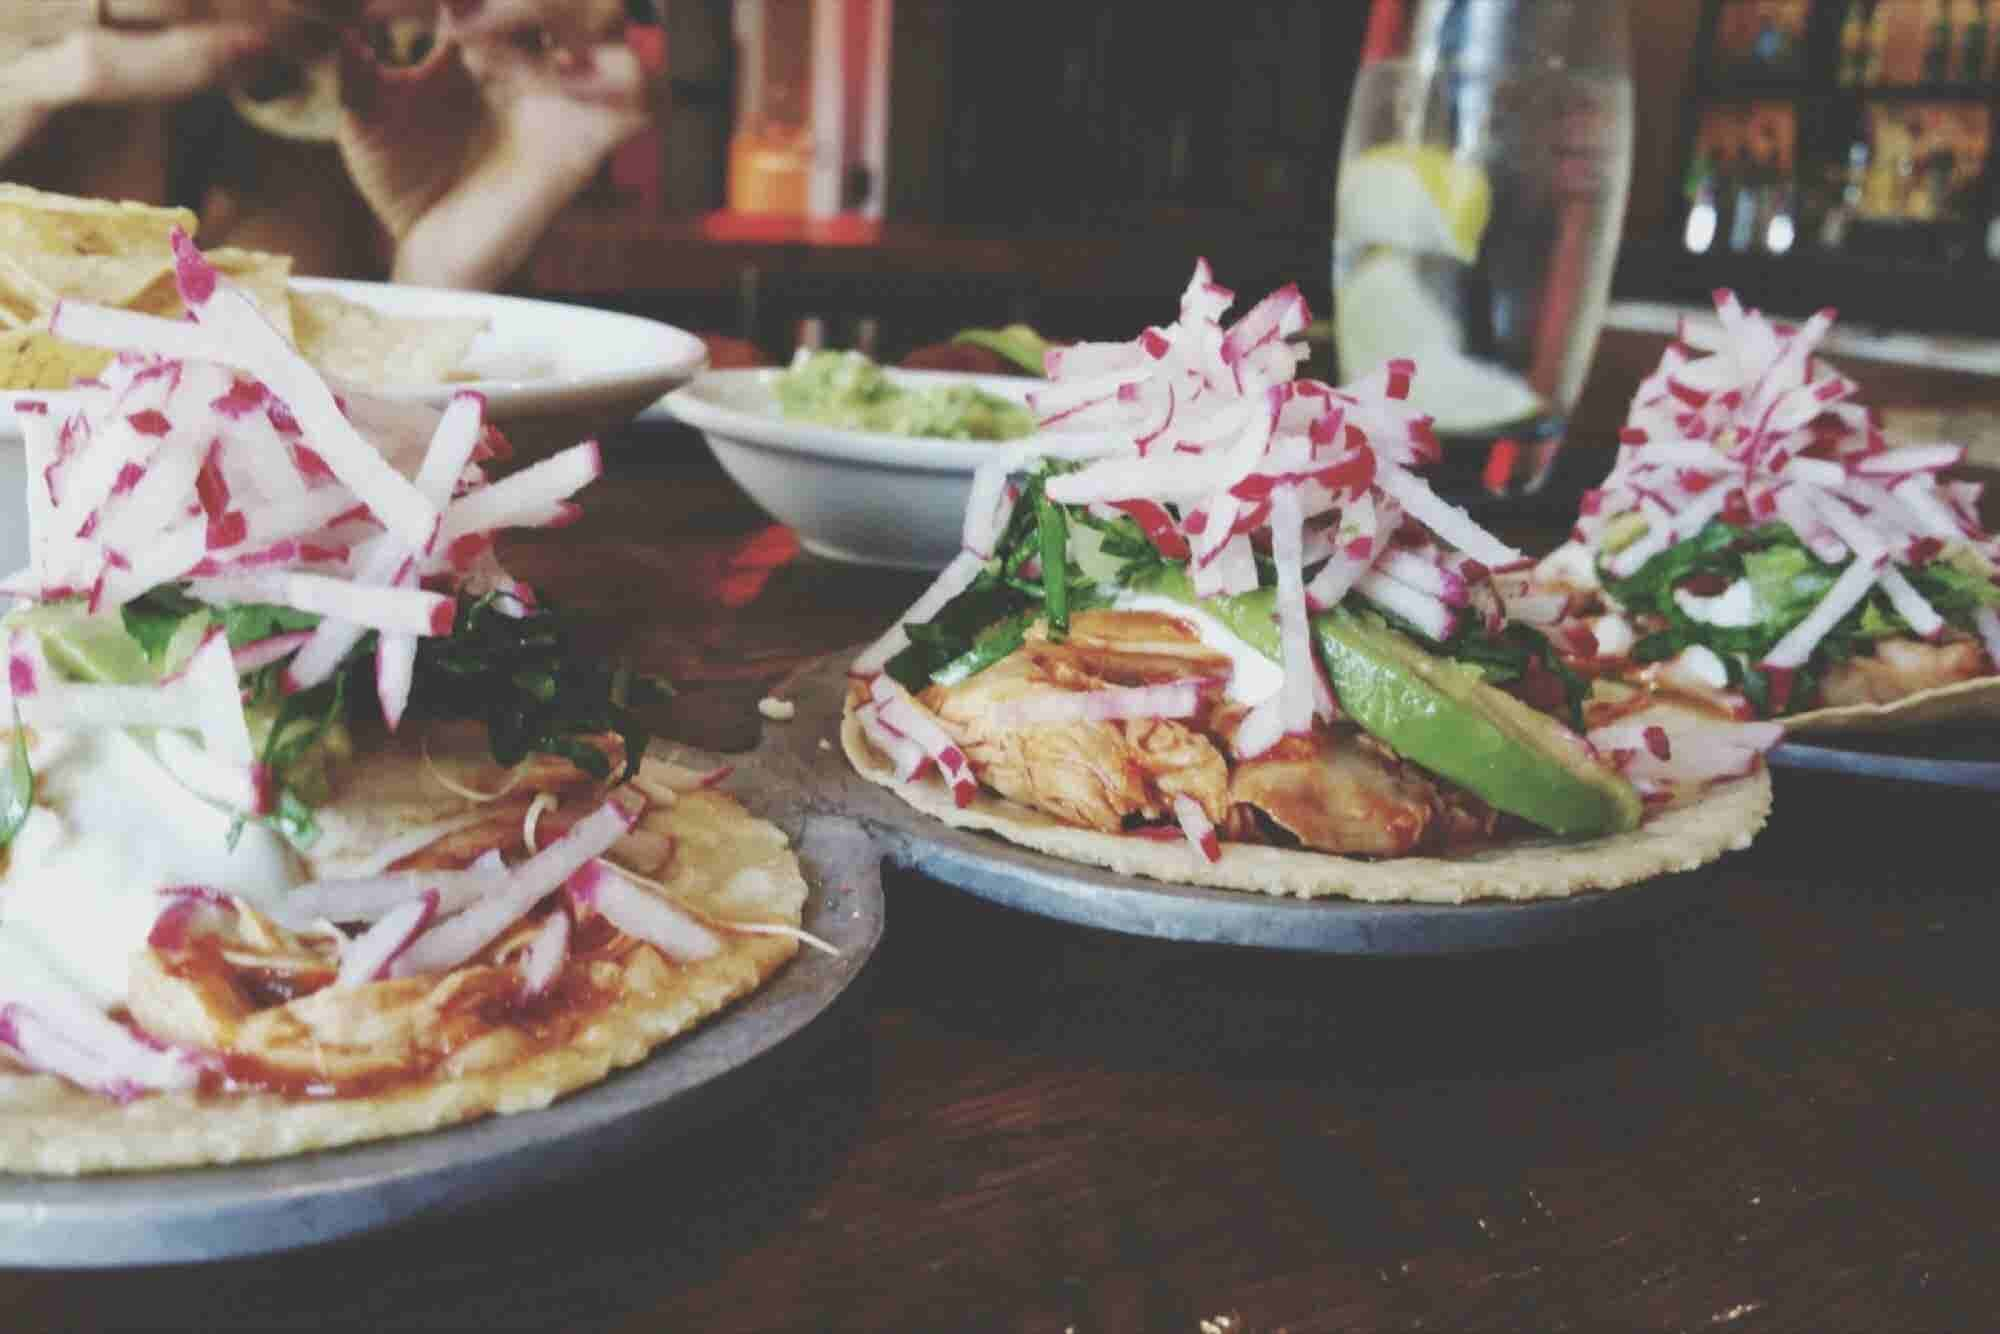 Franchise of the Day: This Taco Shop Will Have You Feeling Warm and 'F...